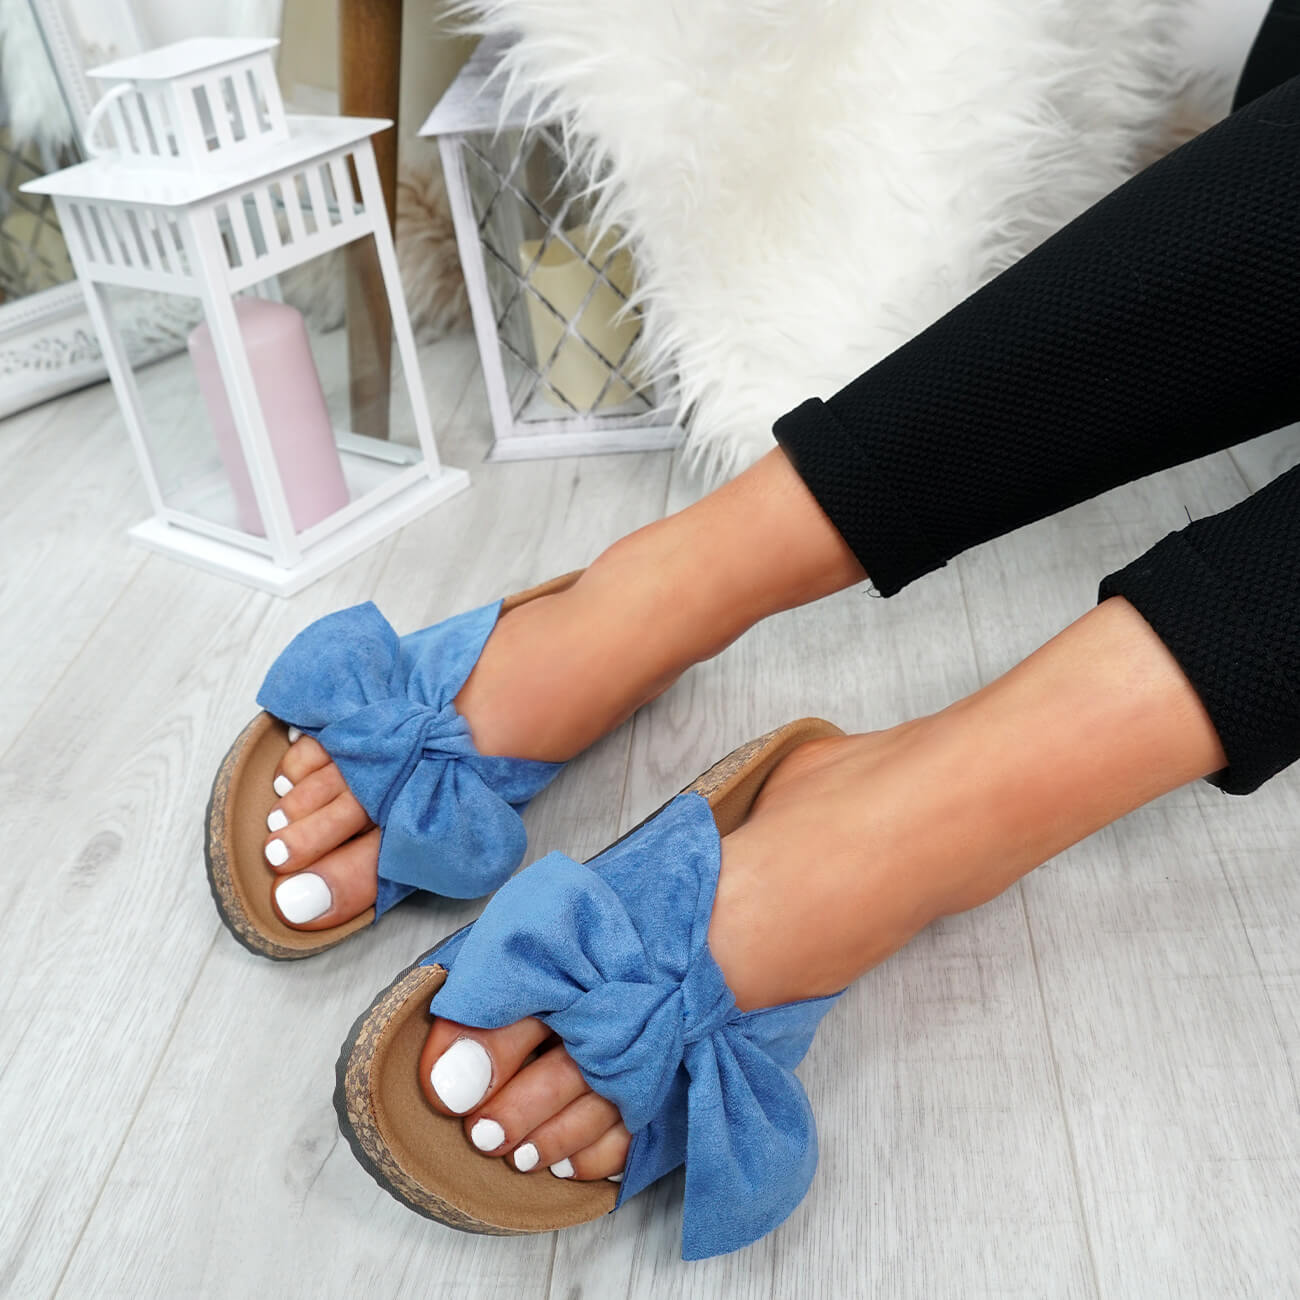 WOMENS-LADIES-SLIP-ON-FLAT-SANDALS-BOW-SLIDERS-SUMMER-CASUAL-SHOES-SIZE thumbnail 17